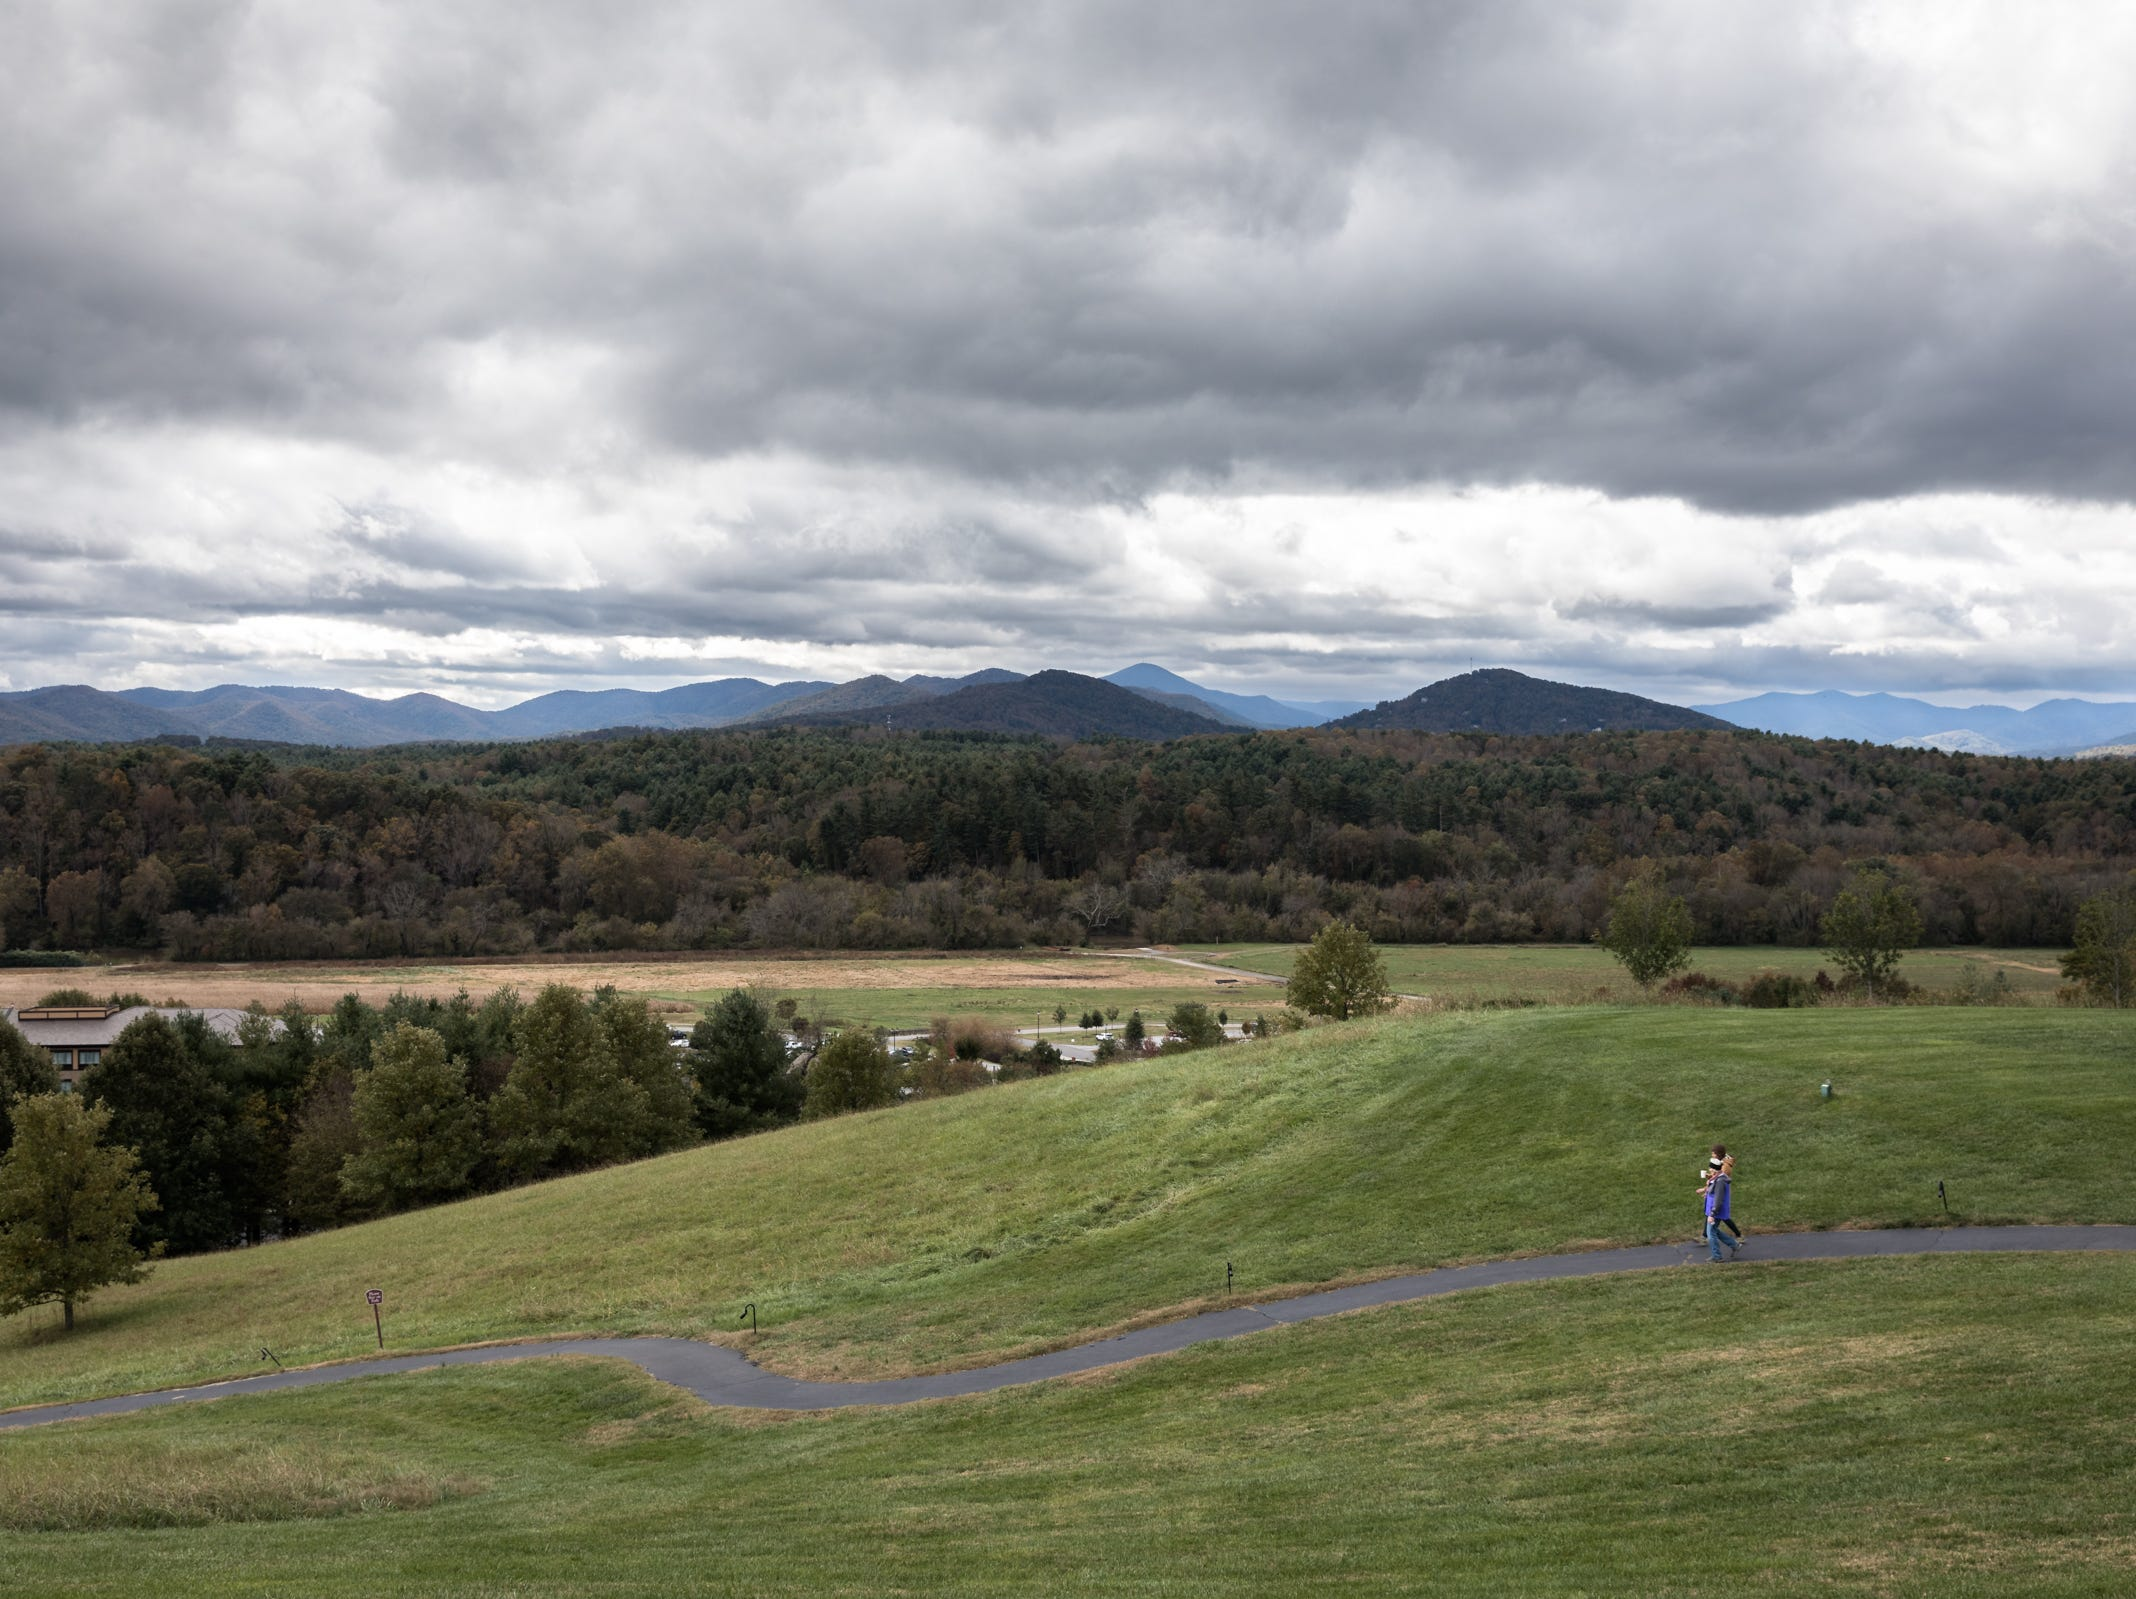 Mountains rise on the horizon as seen from the Biltmore estate Oct. 27, 2018.